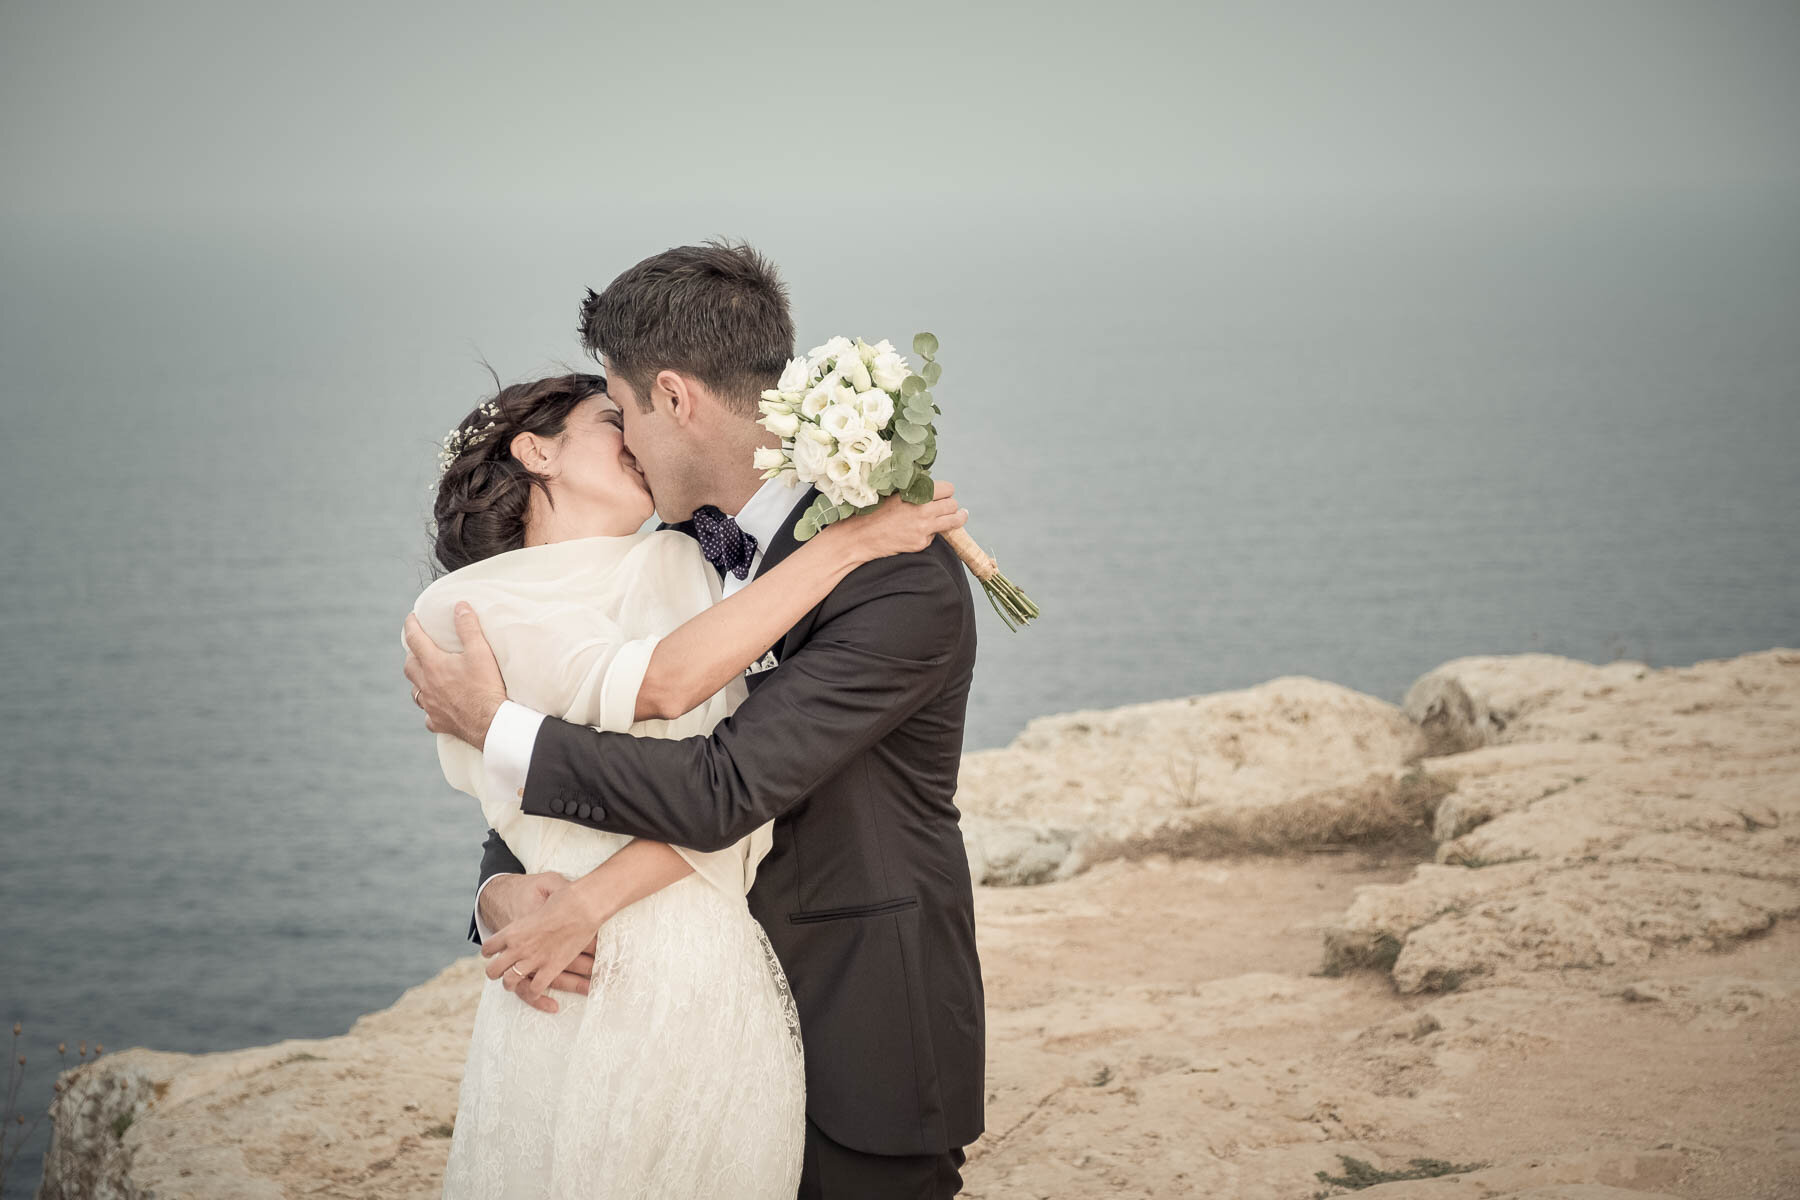 wedding formentera chezz gerdi 19.jpg